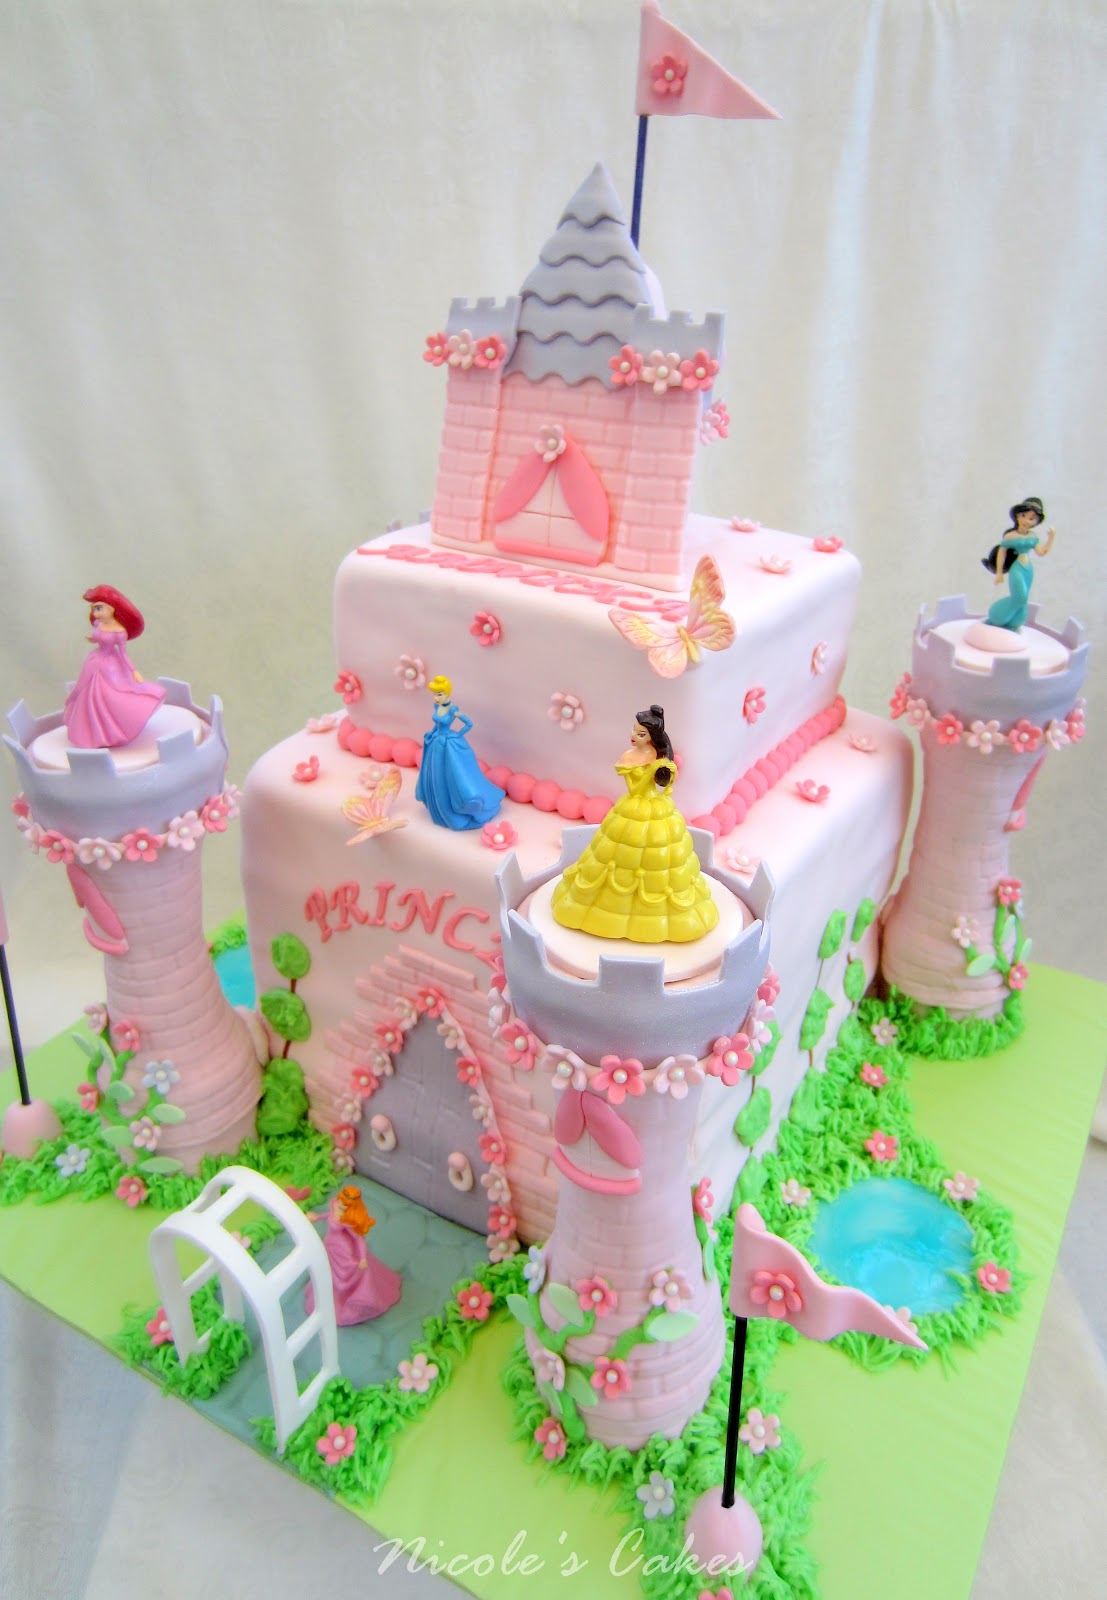 Confections Cakes Amp Creations Princess Castle Cake